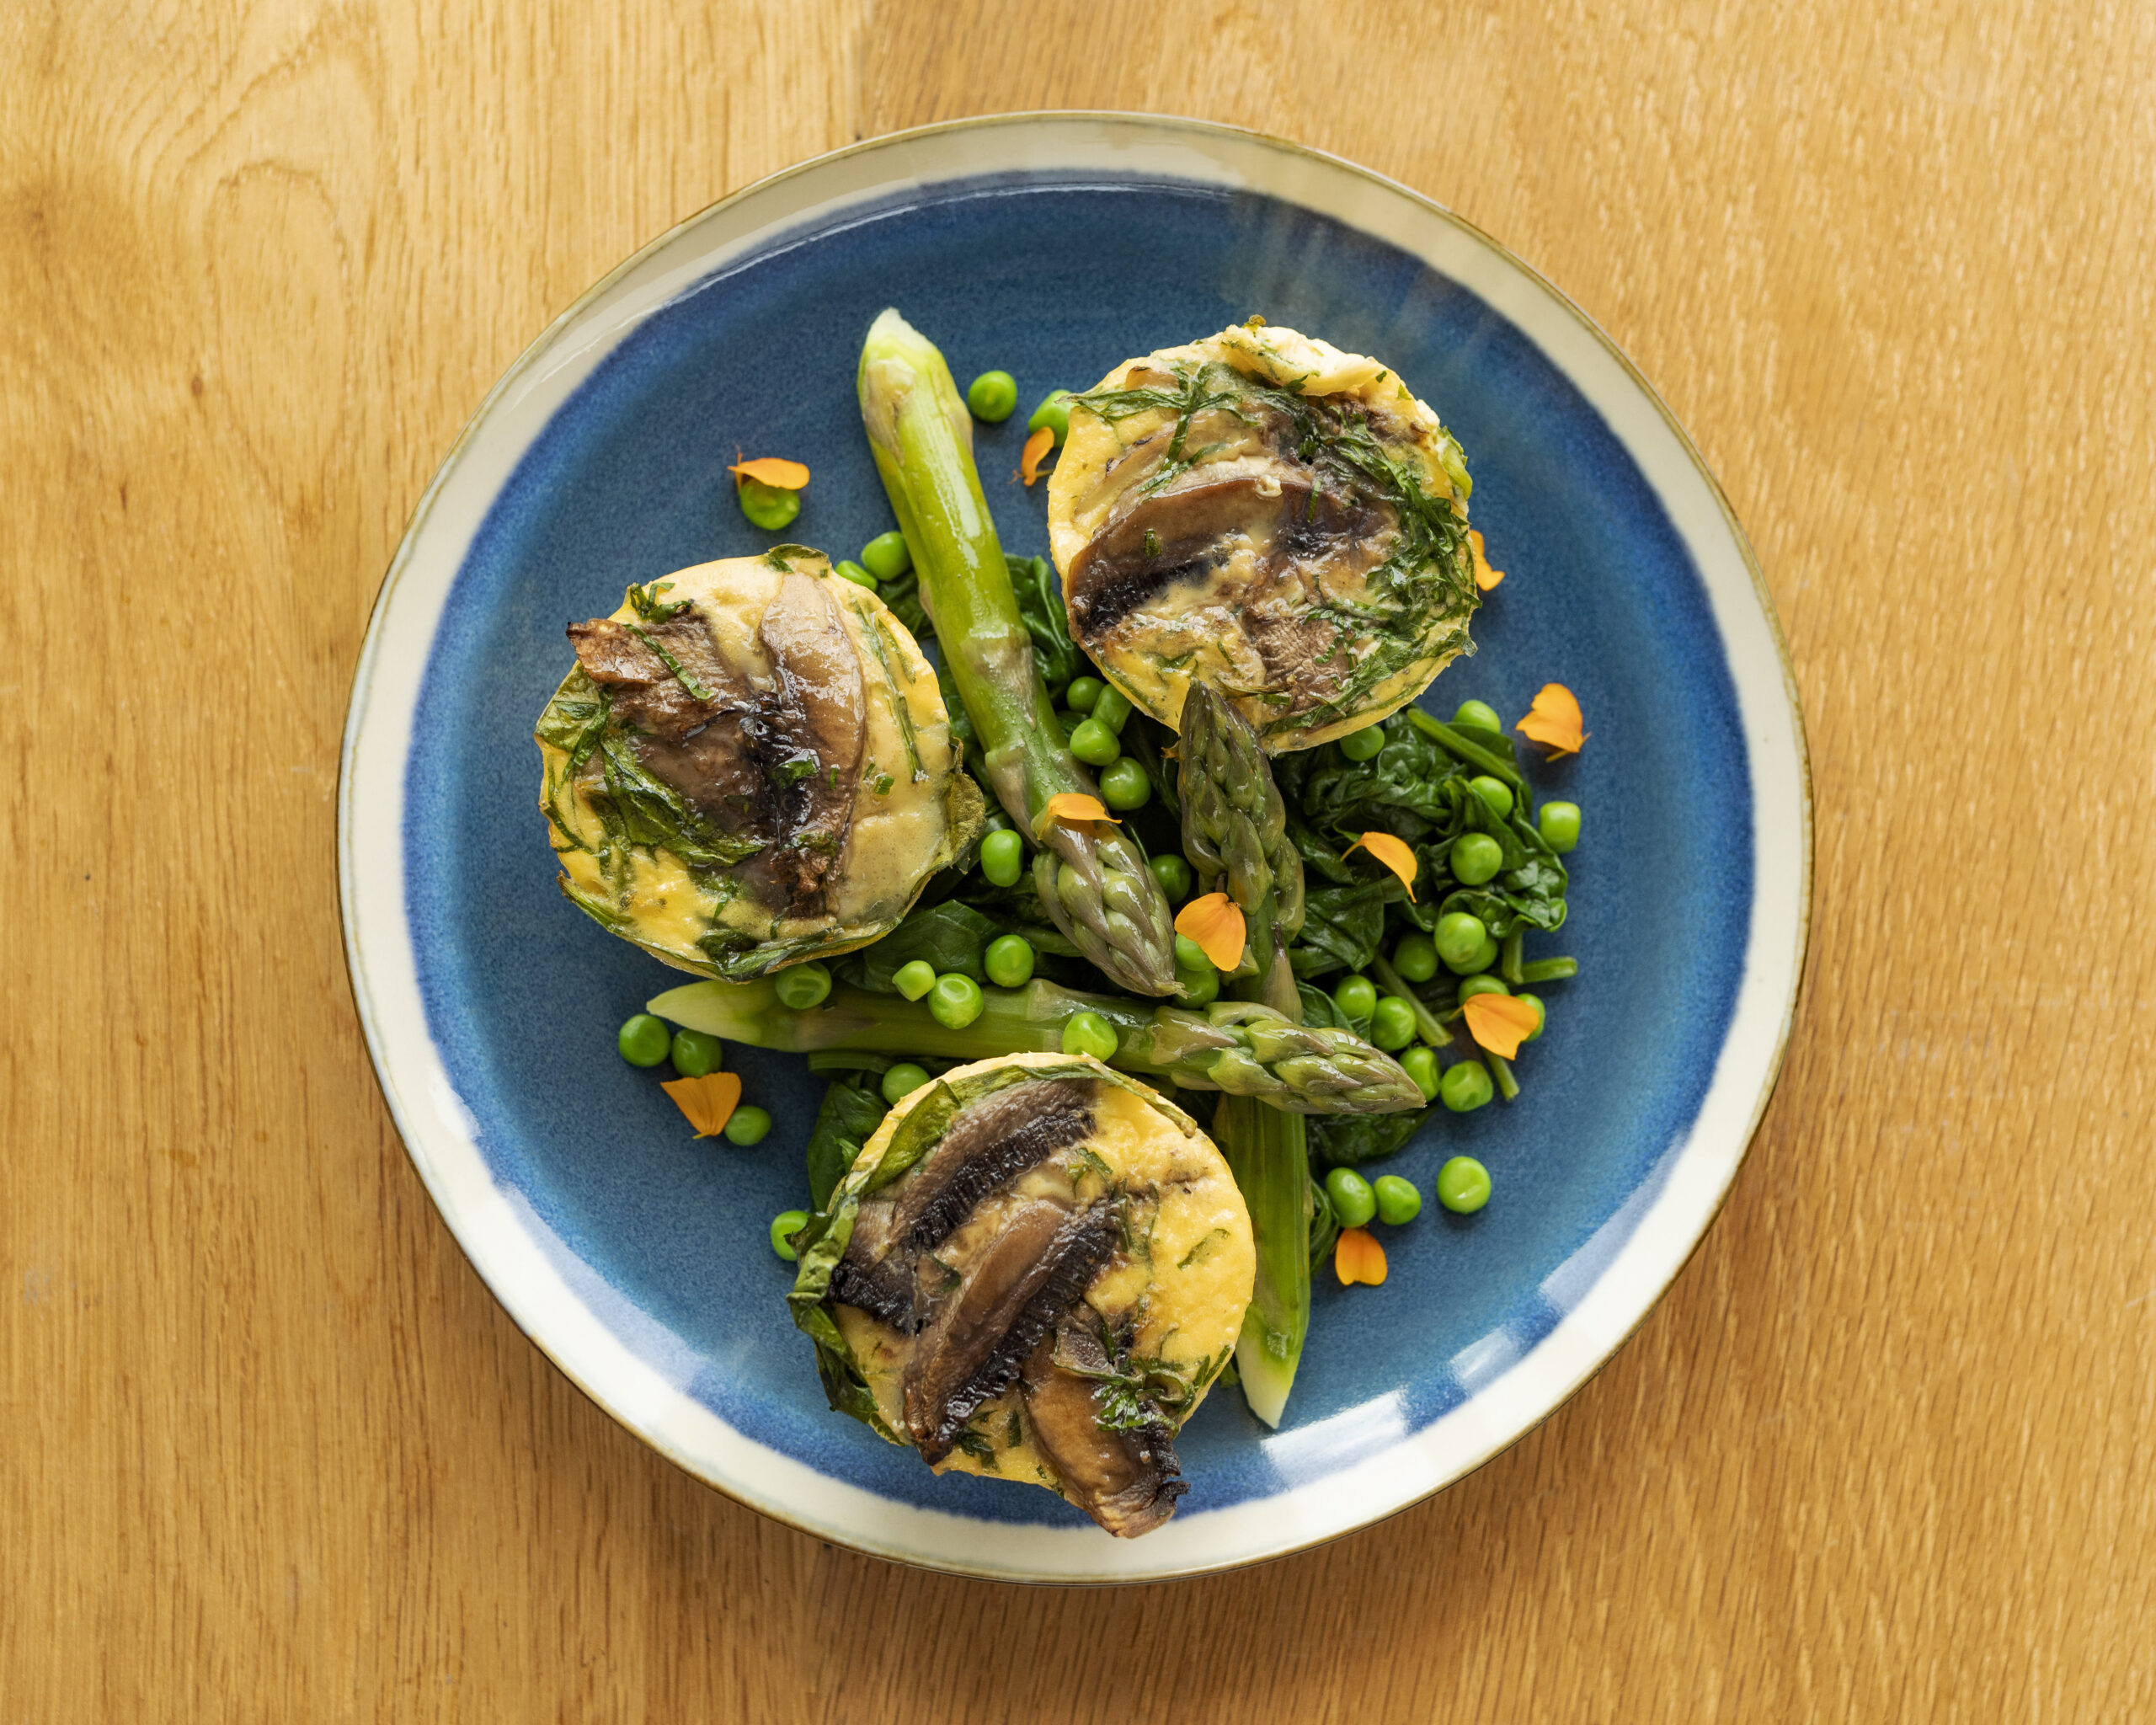 Diet egg muffins with mushrooms, asparagus, spinach and peas